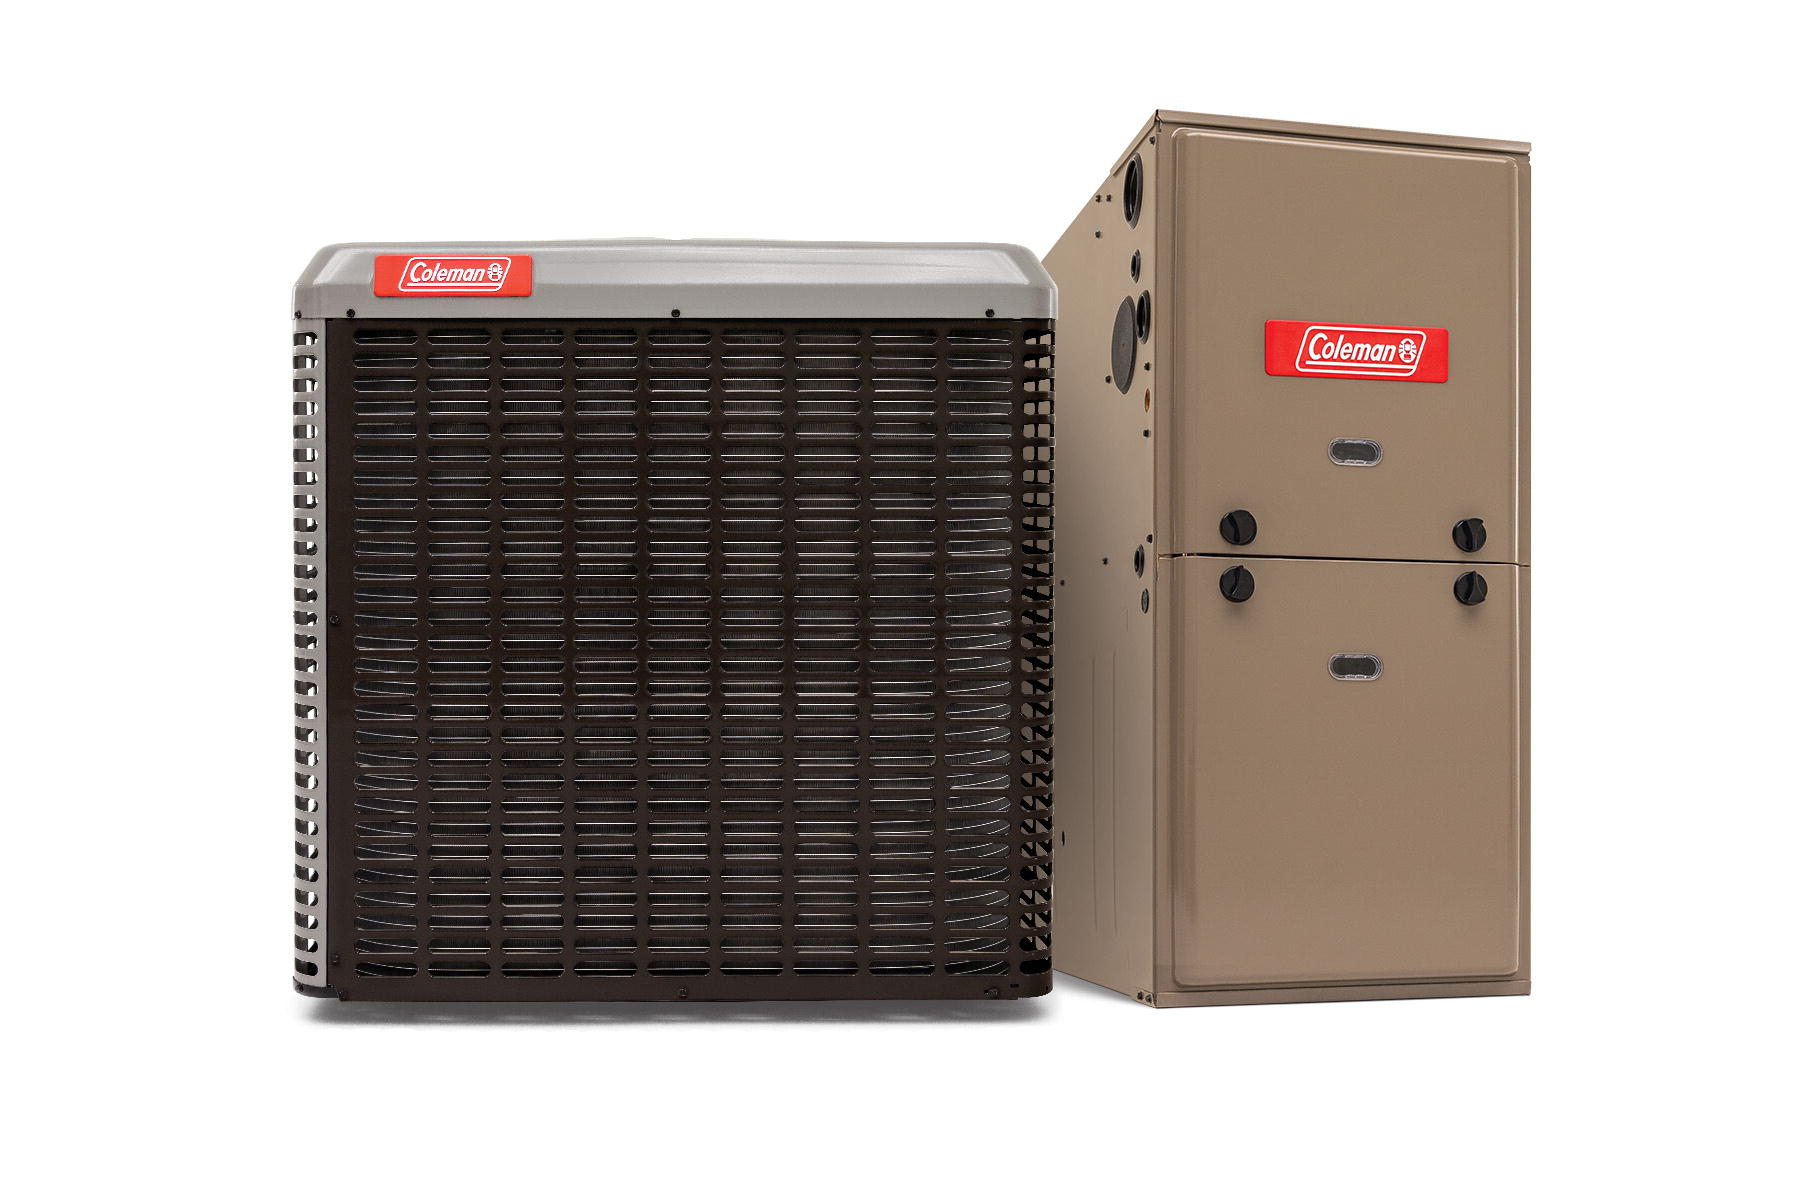 Coleman%26%23174+-+LX+Series+AC+with+90%25%2B+AFUE+Gas+Furnace.jpg